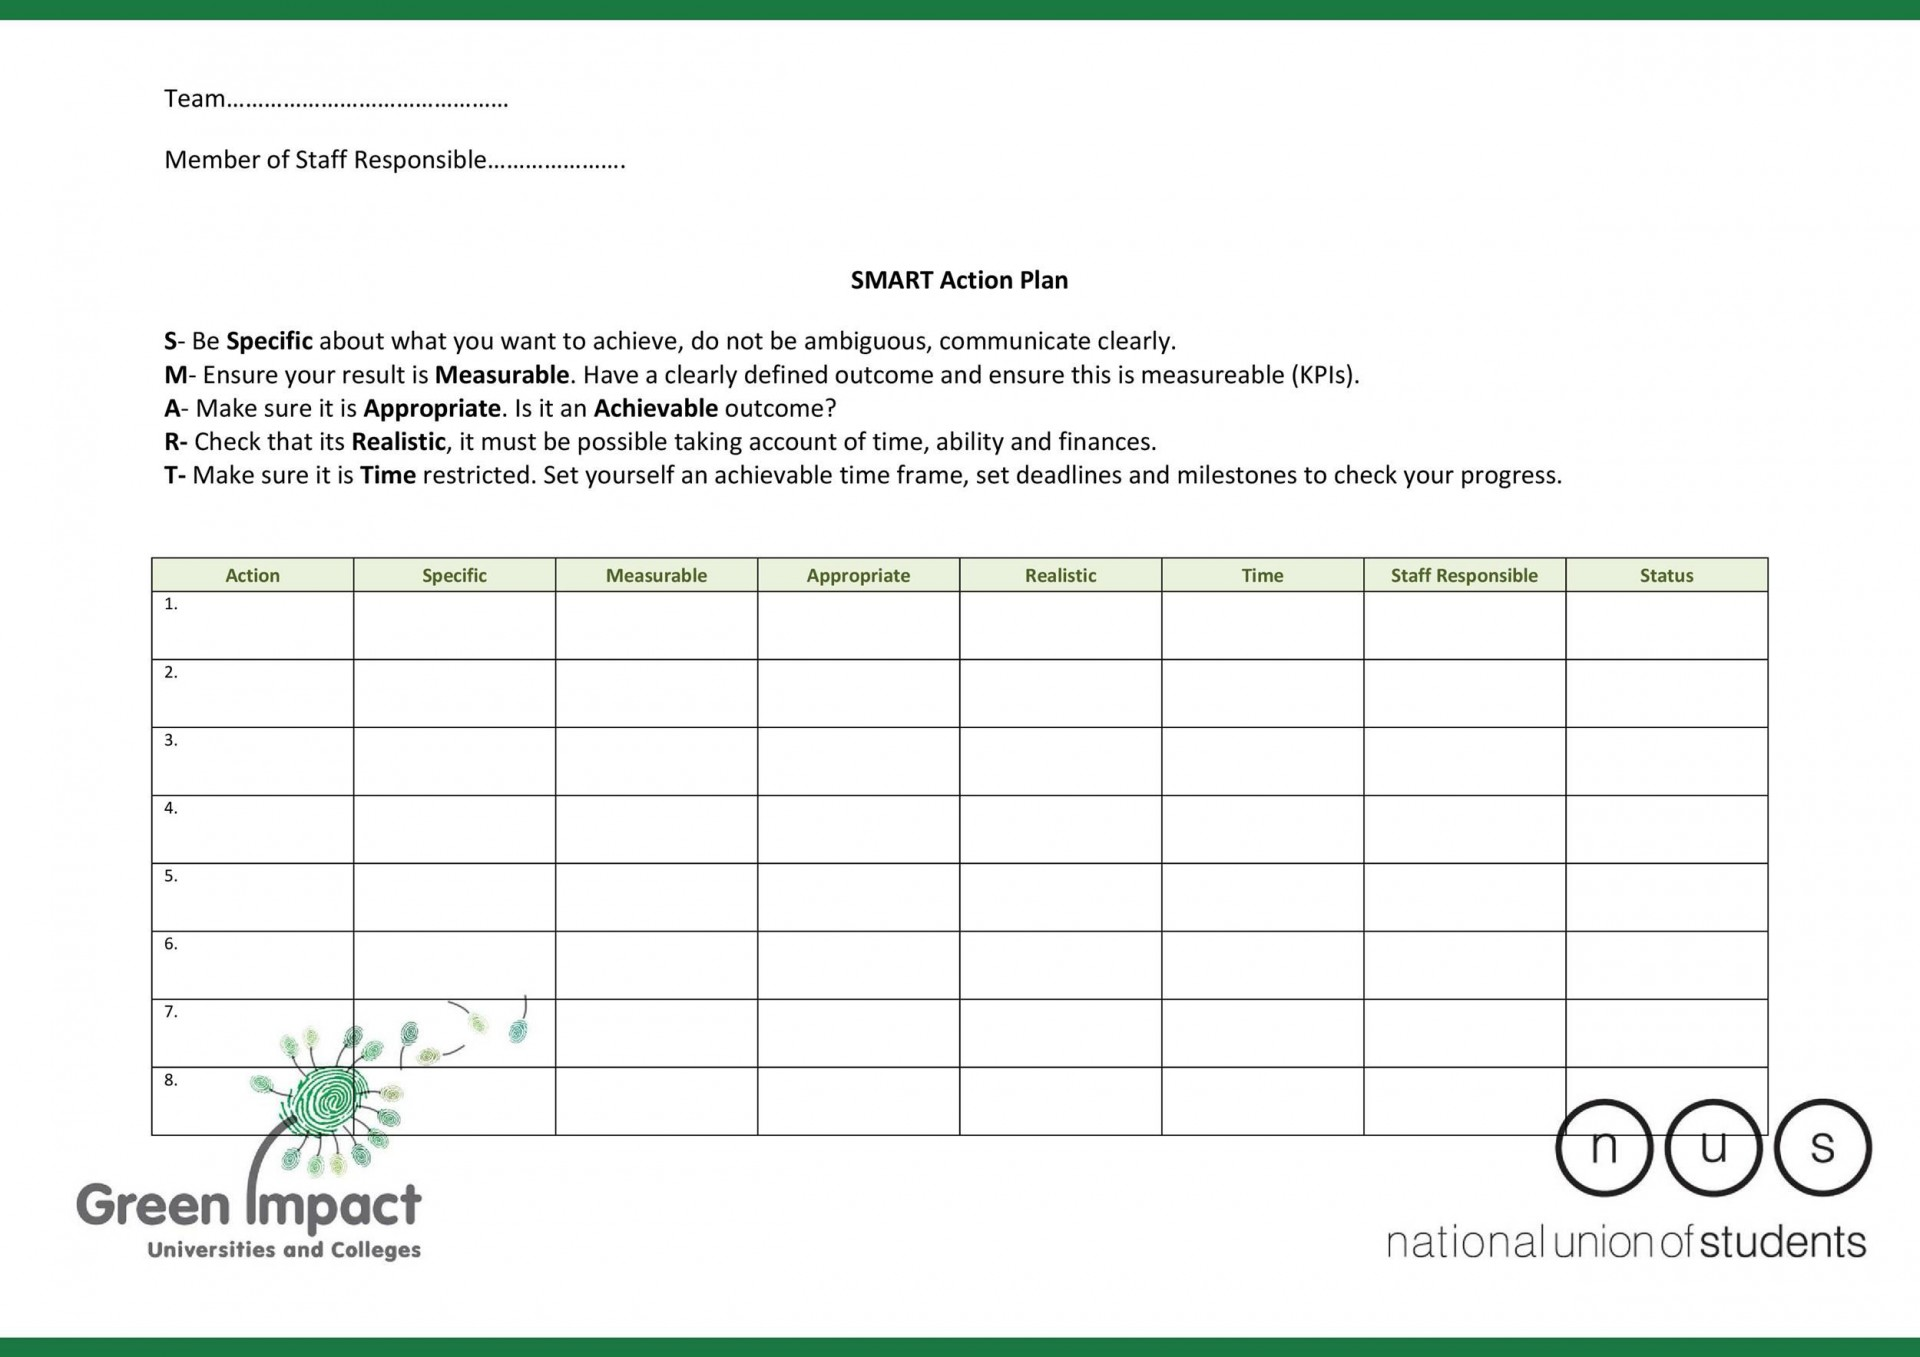 004 Incredible Smart Action Plan Template Image  Download Nh Example Free1920